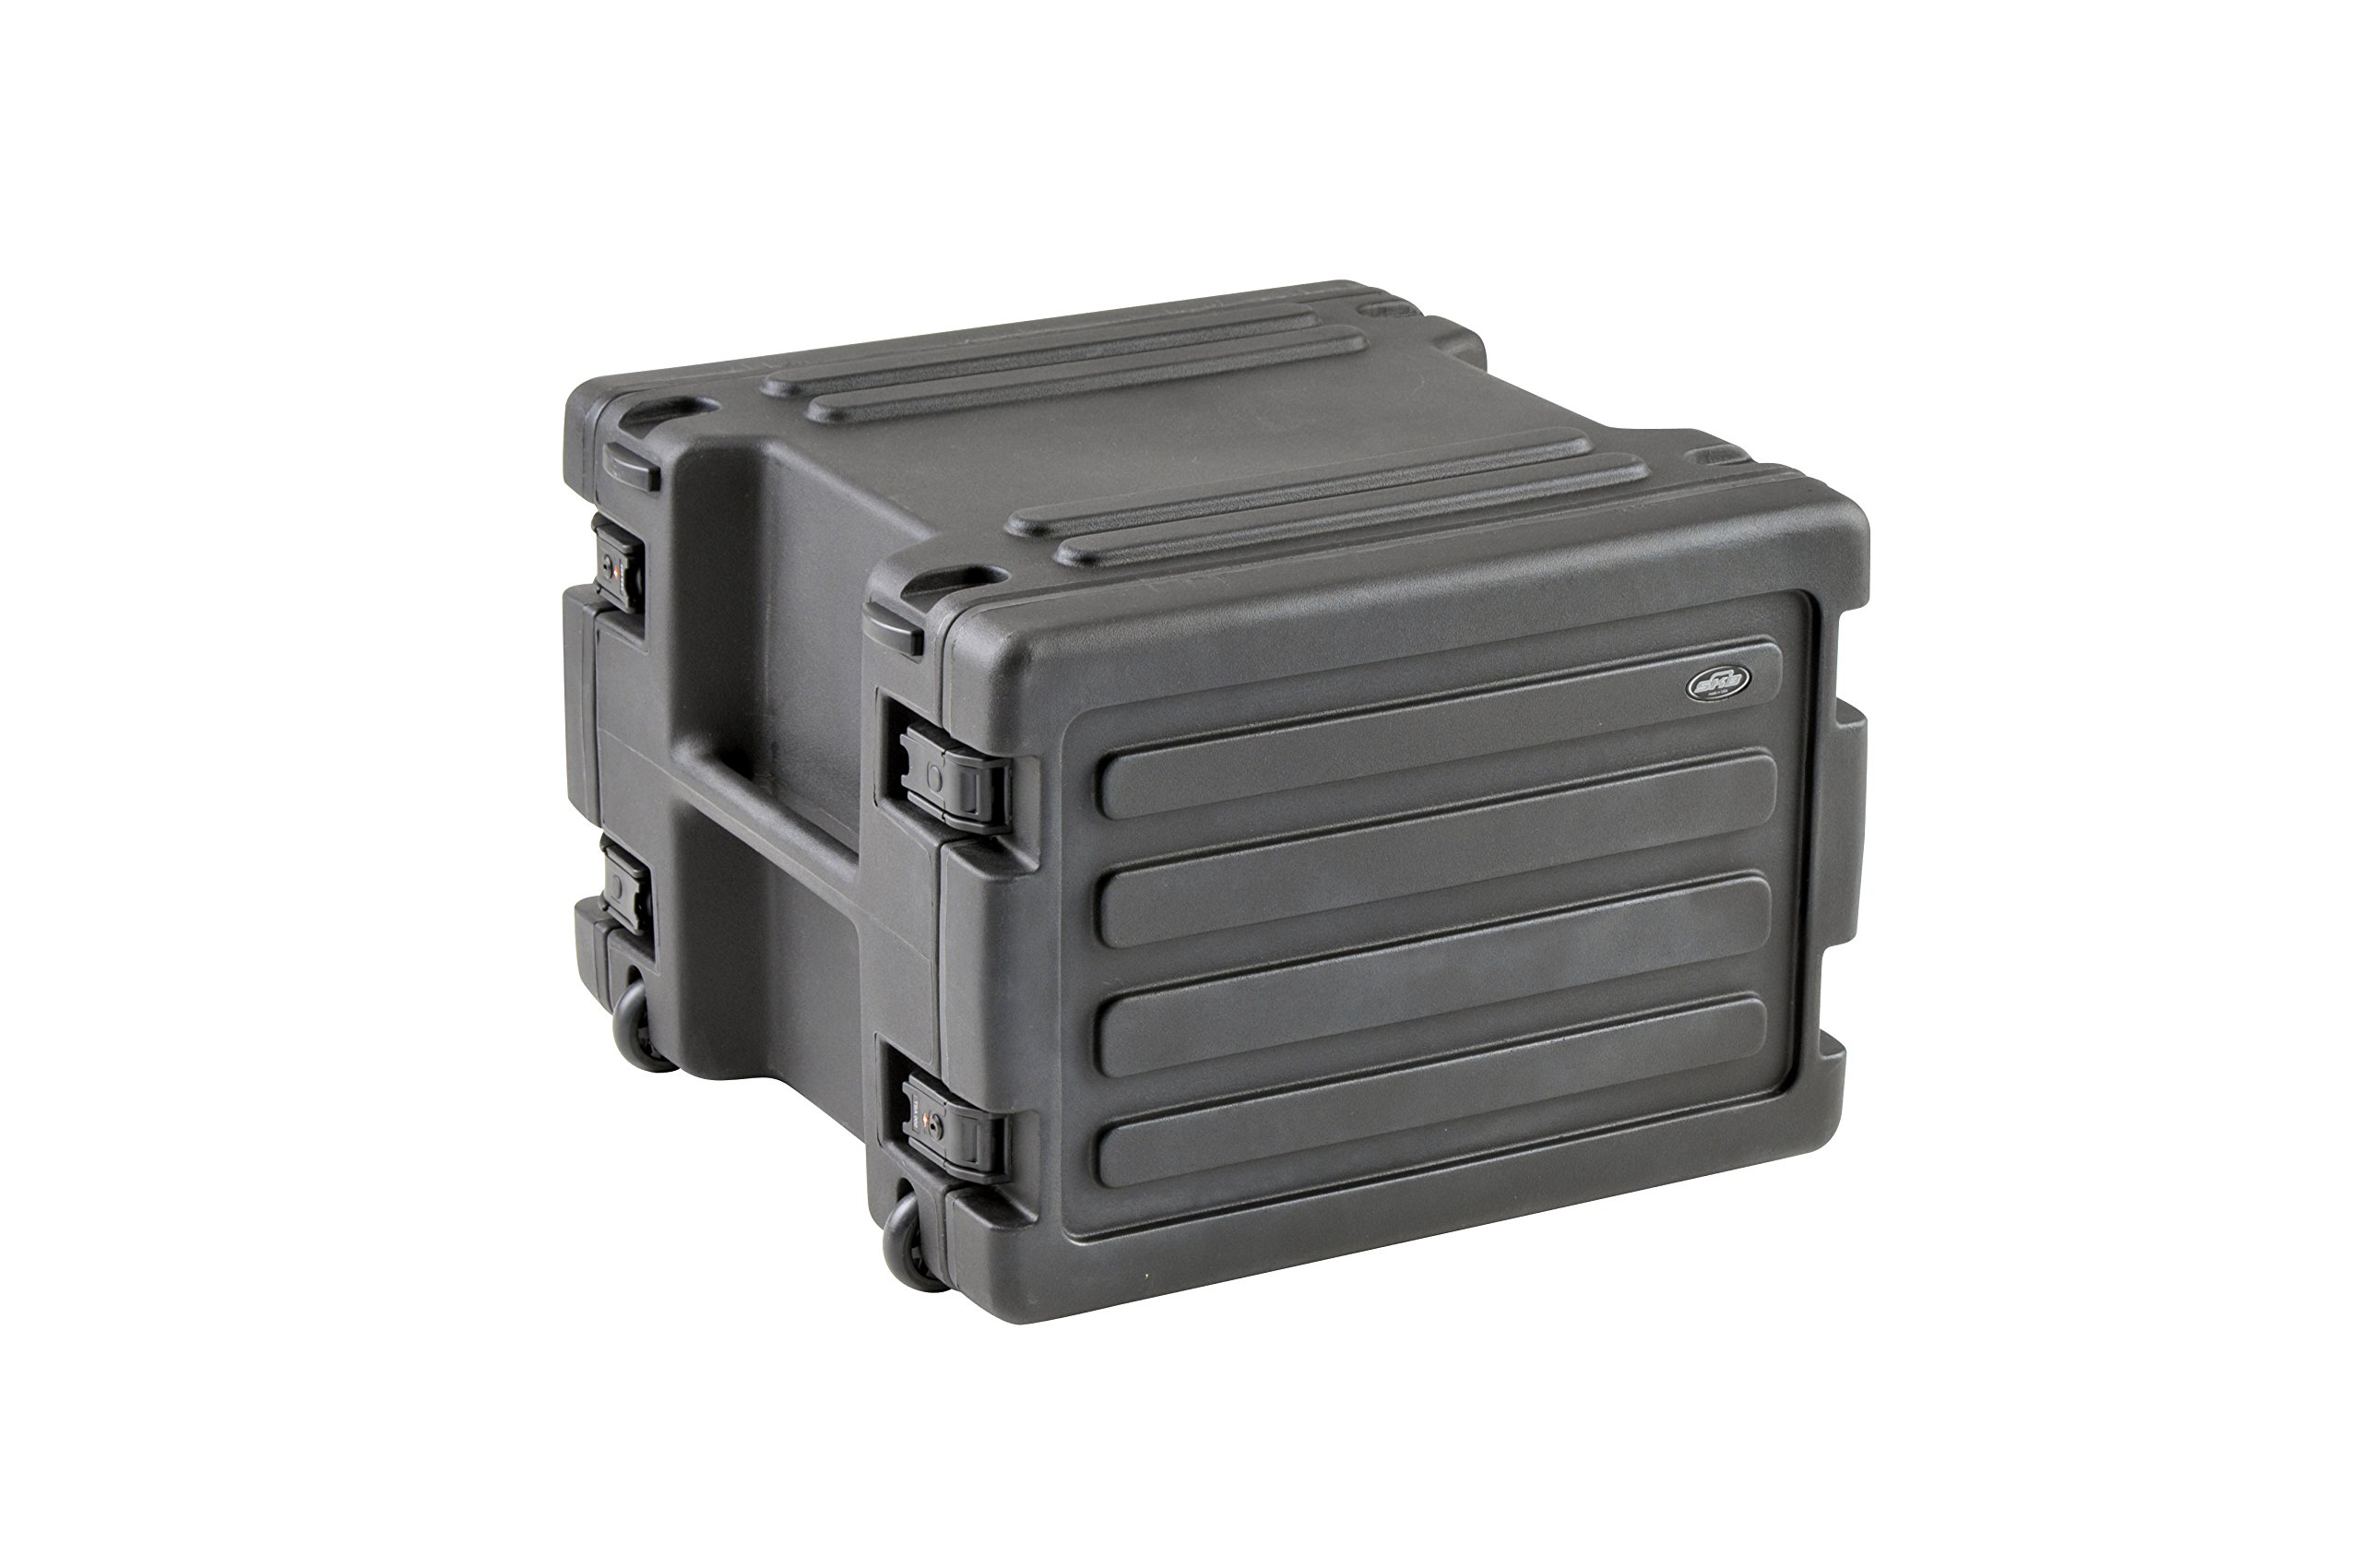 SKB 8U Space Rack with In-line Wheels, TSA Latches, and Handle